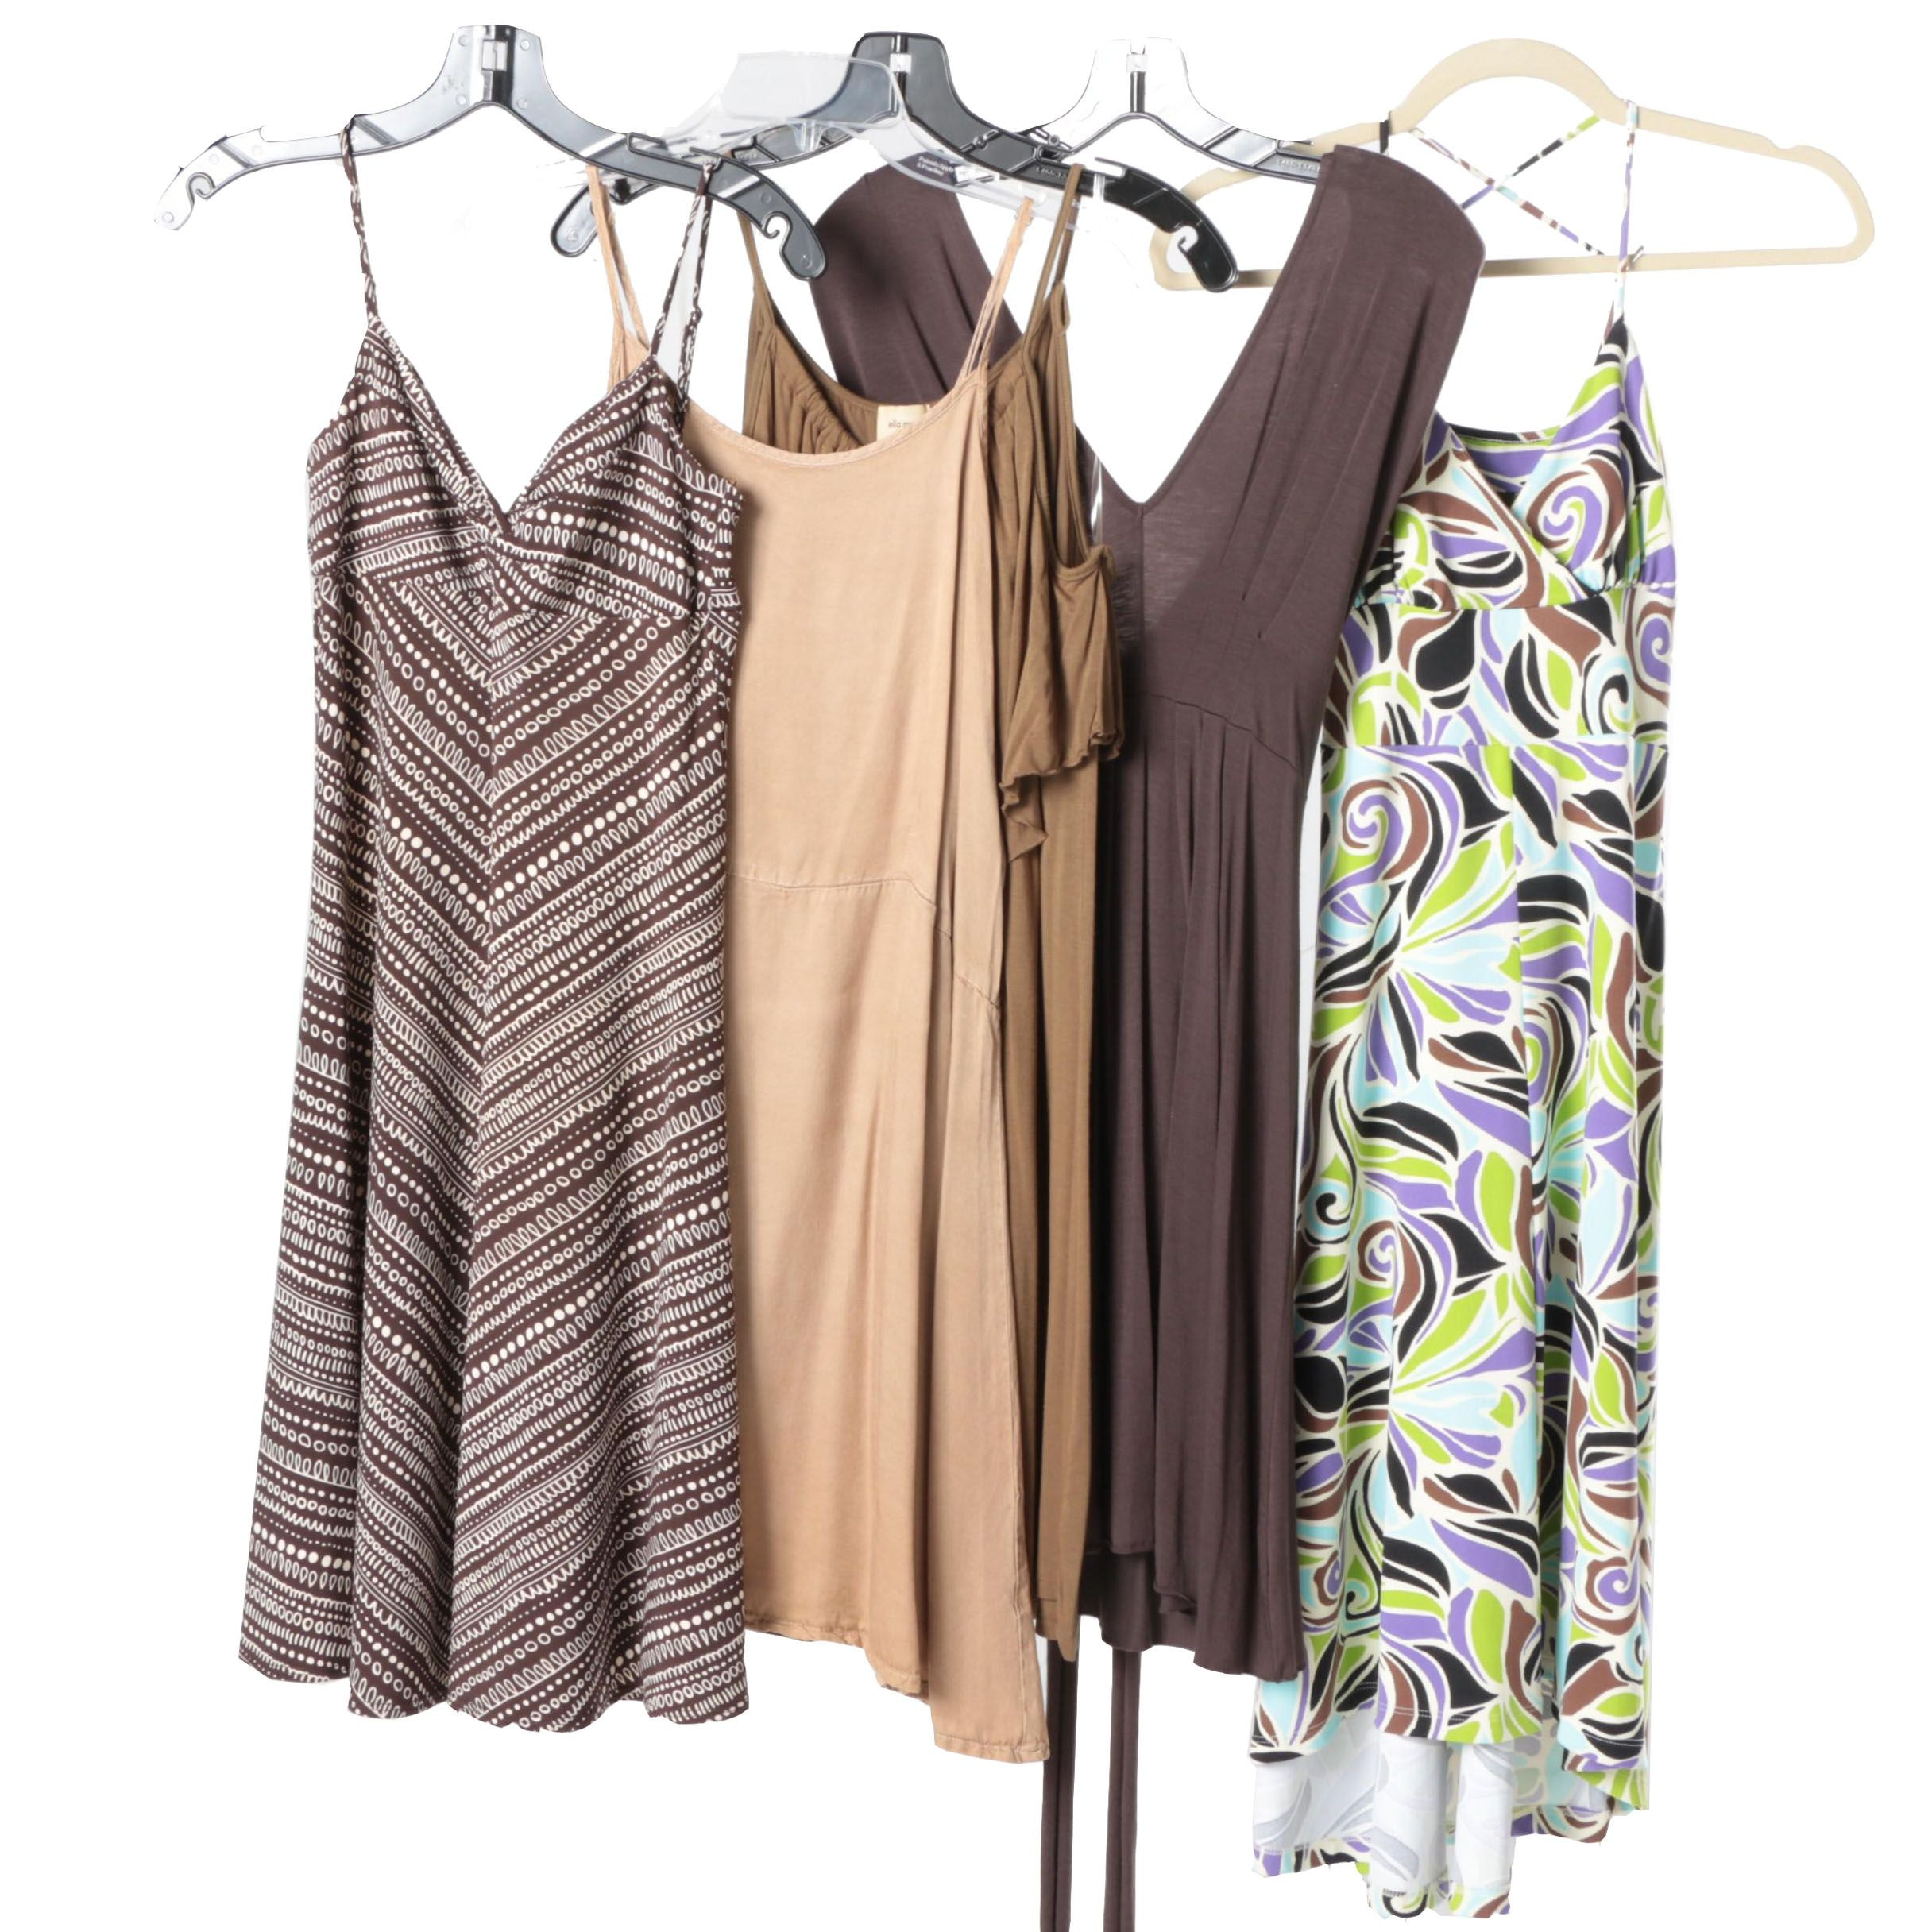 Women's Dresses Including BCBG and Free People